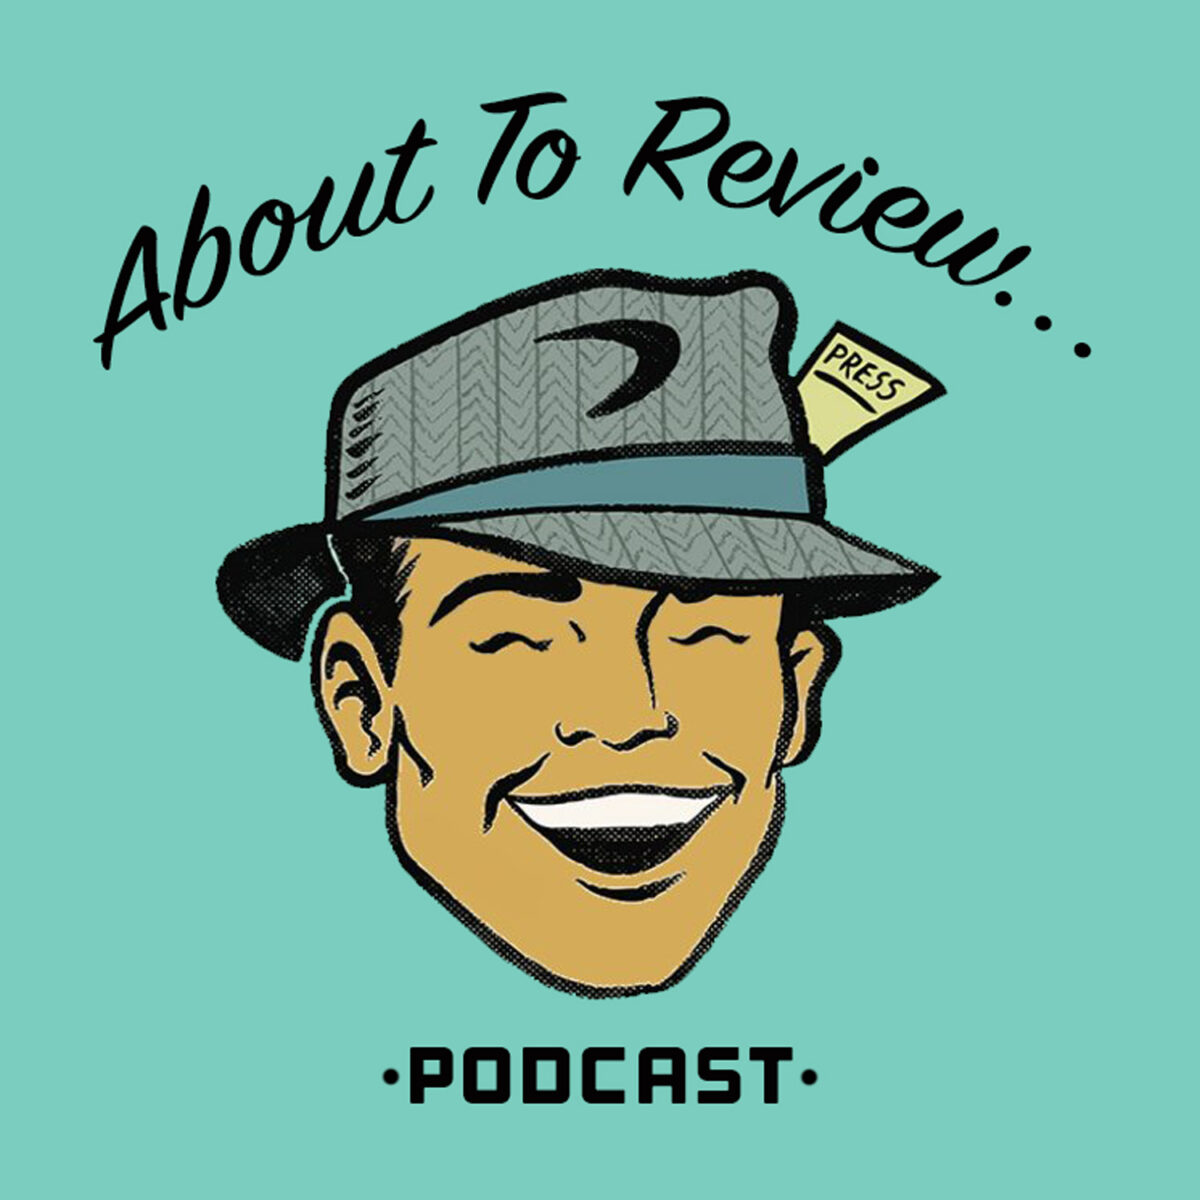 69574003e0b About to Review – Weekly movie review podcast with a goal to amplify ...